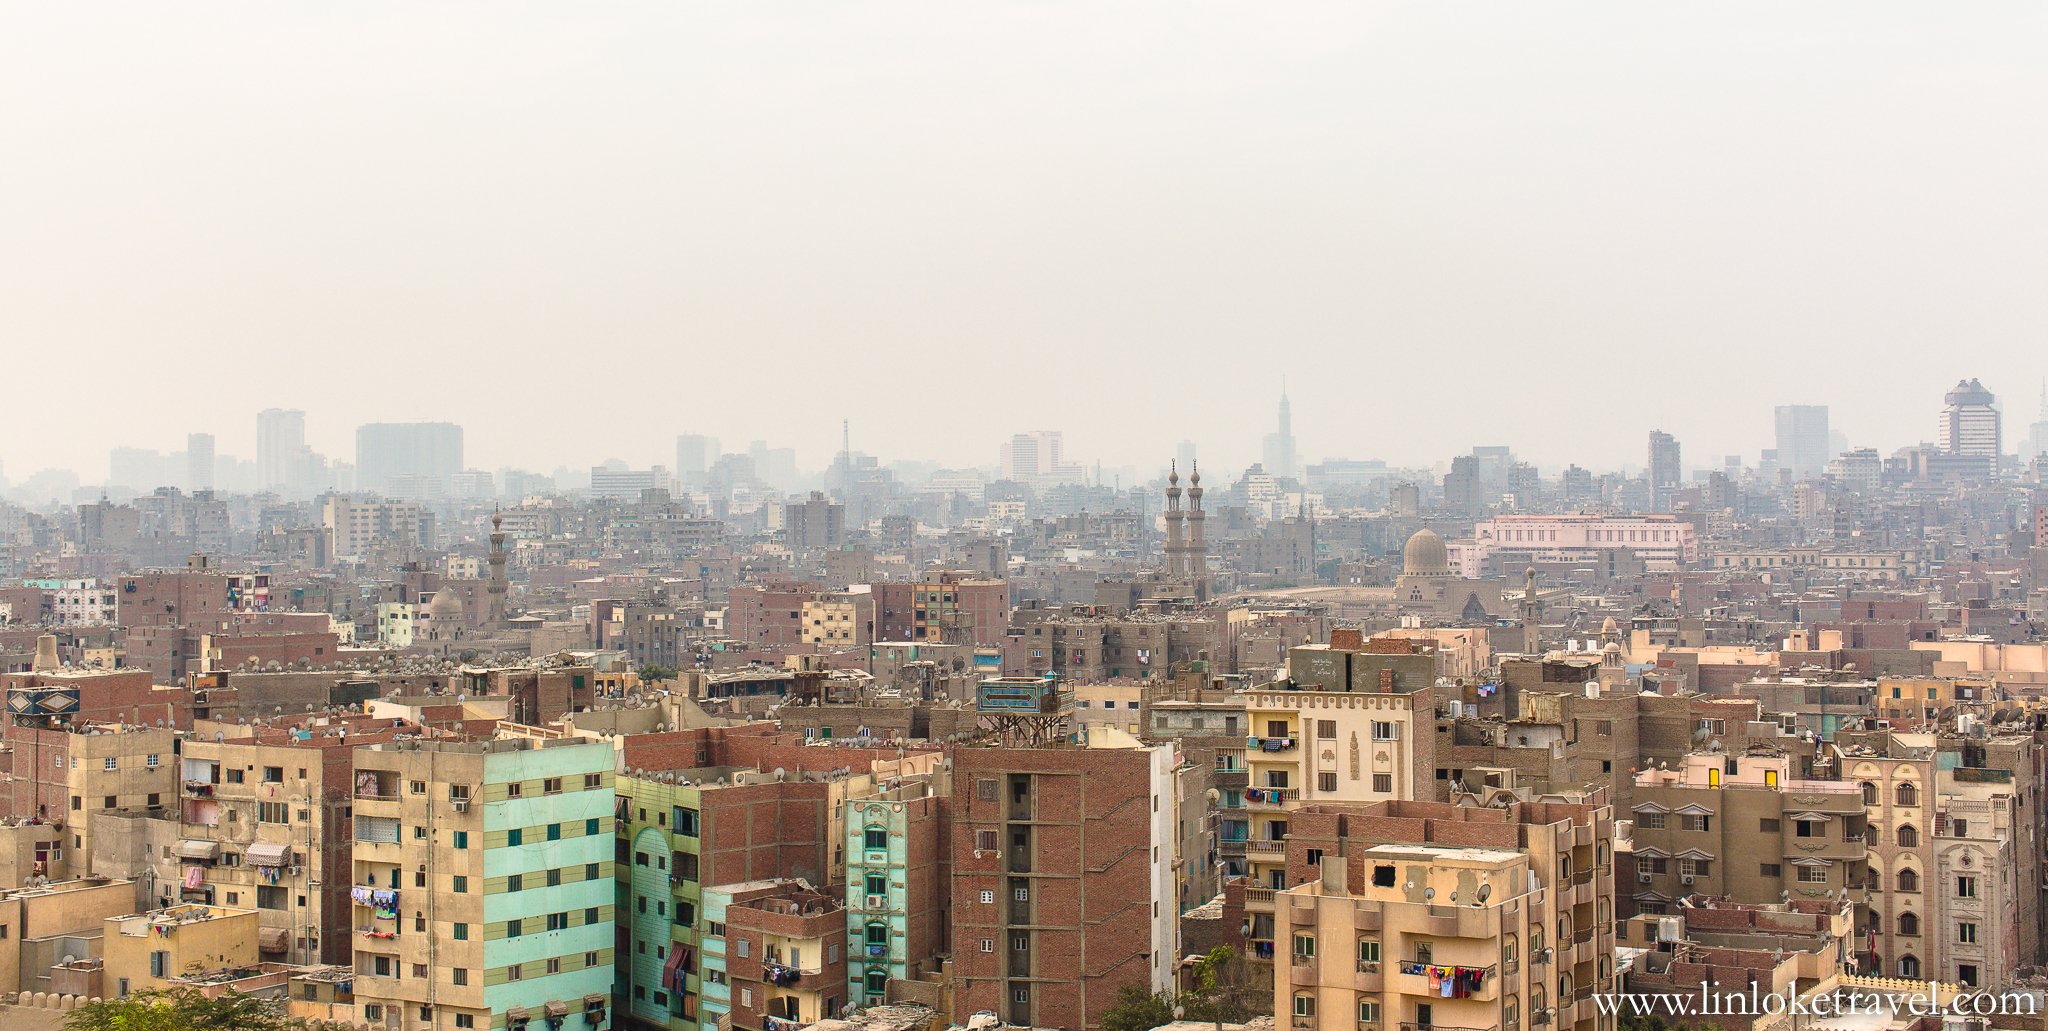 Cairo's dusty and endless cityscape.